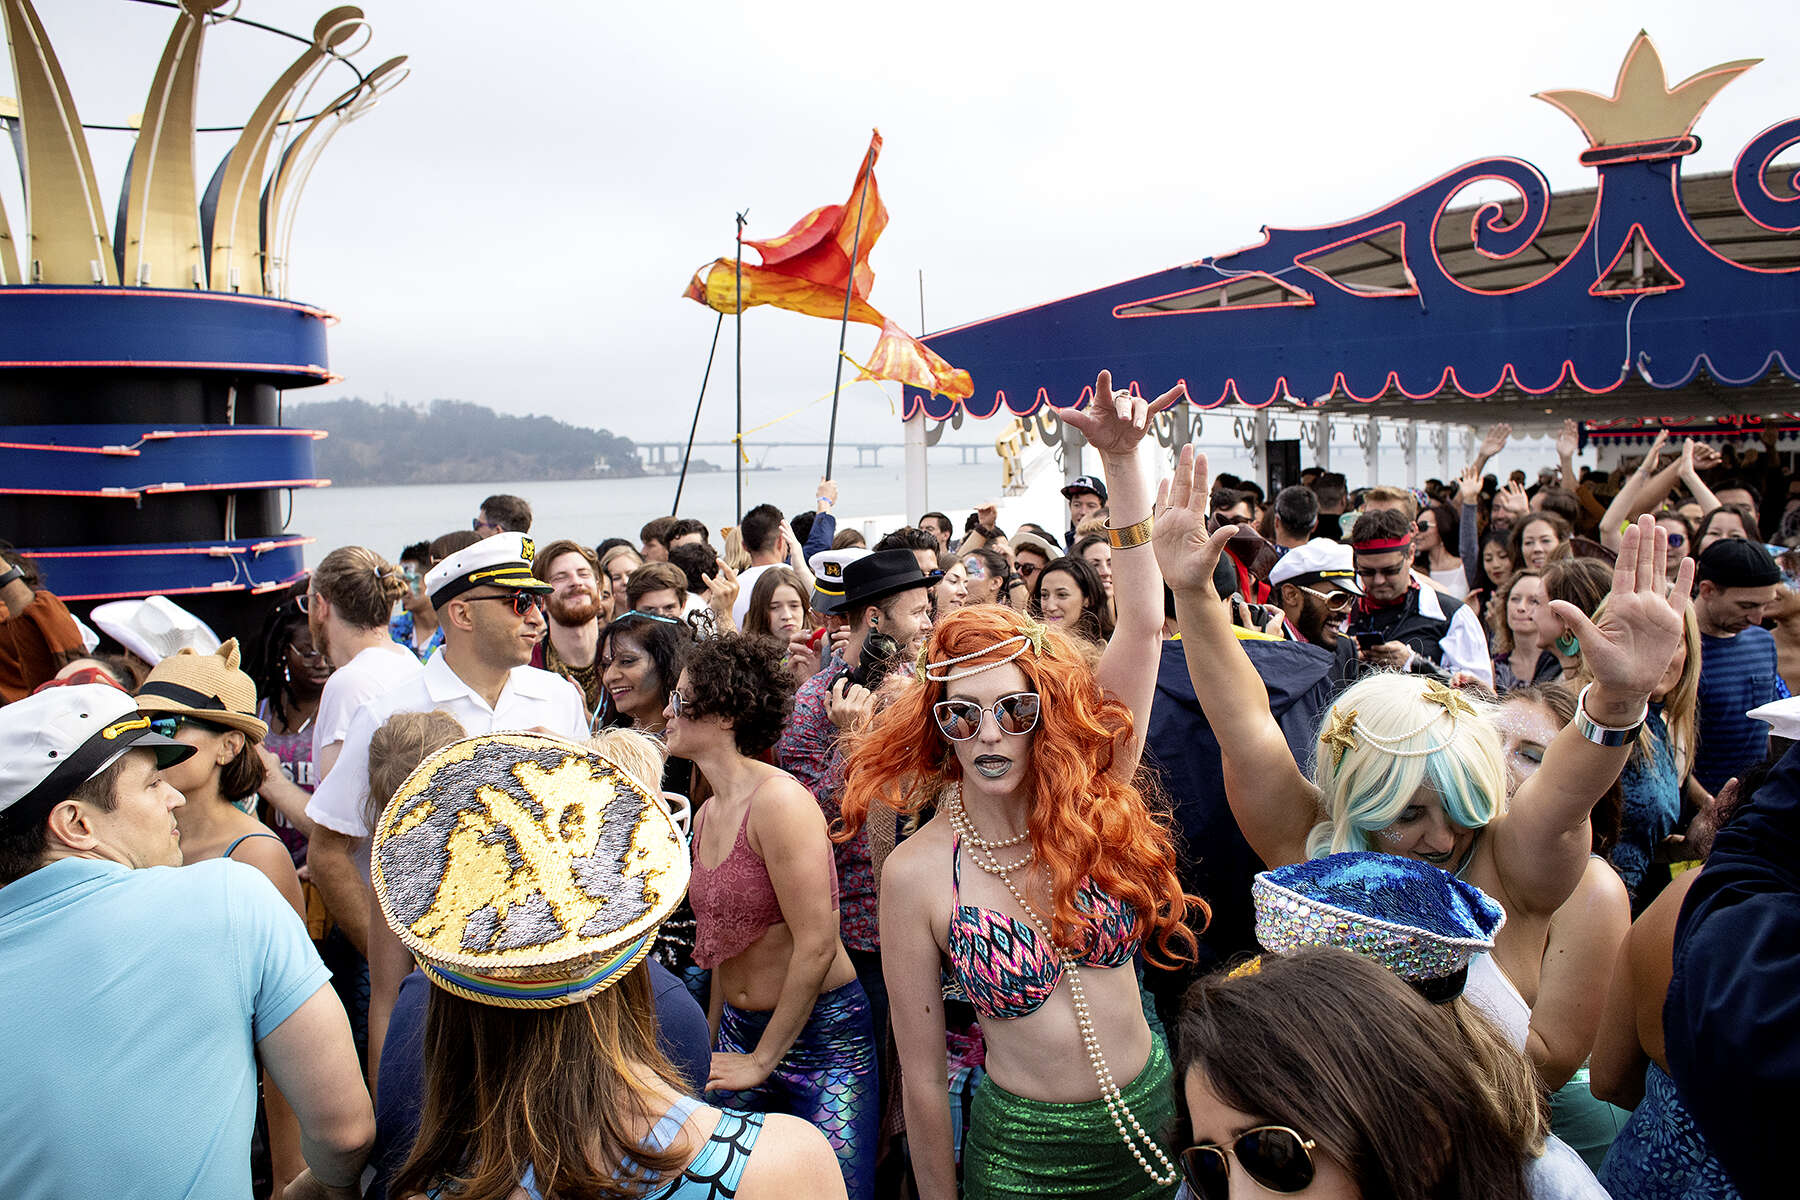 Daybreaker attendees dance during the event on the Hornblower Belle cruise ship, which celebrated the 4th anniversary of the early-morning dance parties in San Francisco, Calif., on Friday, July 20, 2018. Attendees were encouraged to dress in a nautical theme. Daybreaker describes itself as {quote}an early morning dance movement.{quote} The parties are alcohol and substance free, held early in the morning on the weekdays. The dance parties start at 7 am and are supposed to help energize attendees before they head to work and the day ahead. CONTACTS: Organizer: Mustafa Khan hey.mustafa@gmail.com